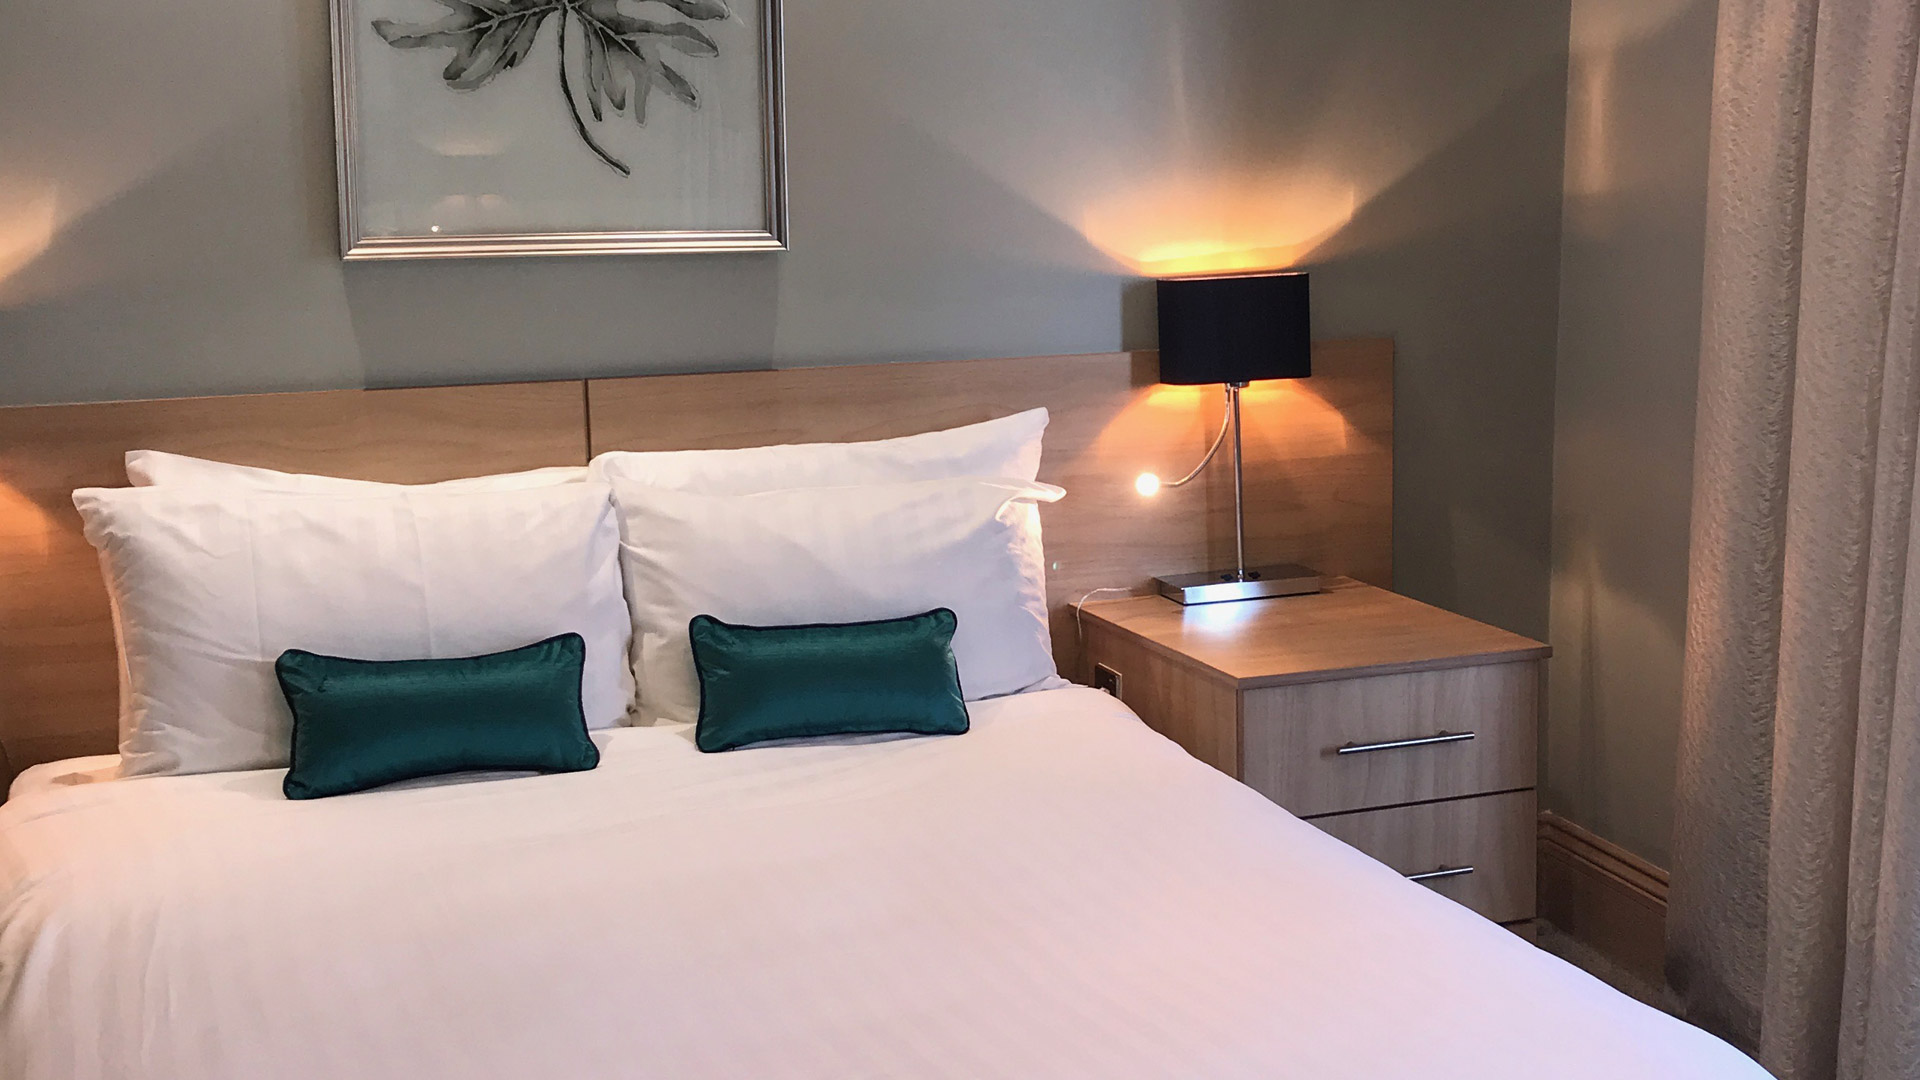 Hotel Collingwood B&B Room Stay in Bournemouth by the seaside